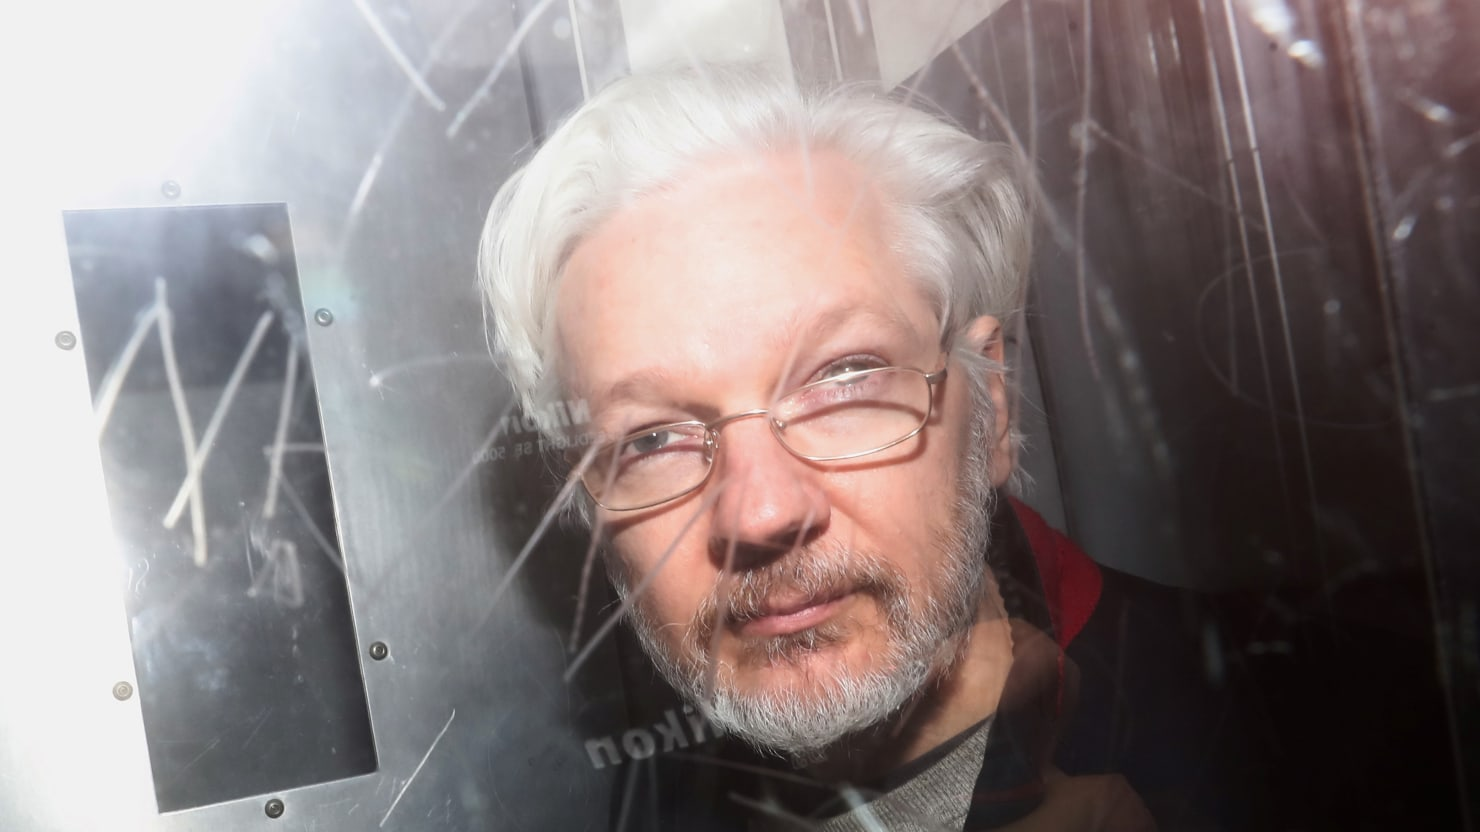 Trump Offered Assange Pardon if He Covered Up Russian Hack, WikiLeaks Founder's Lawyer Claims